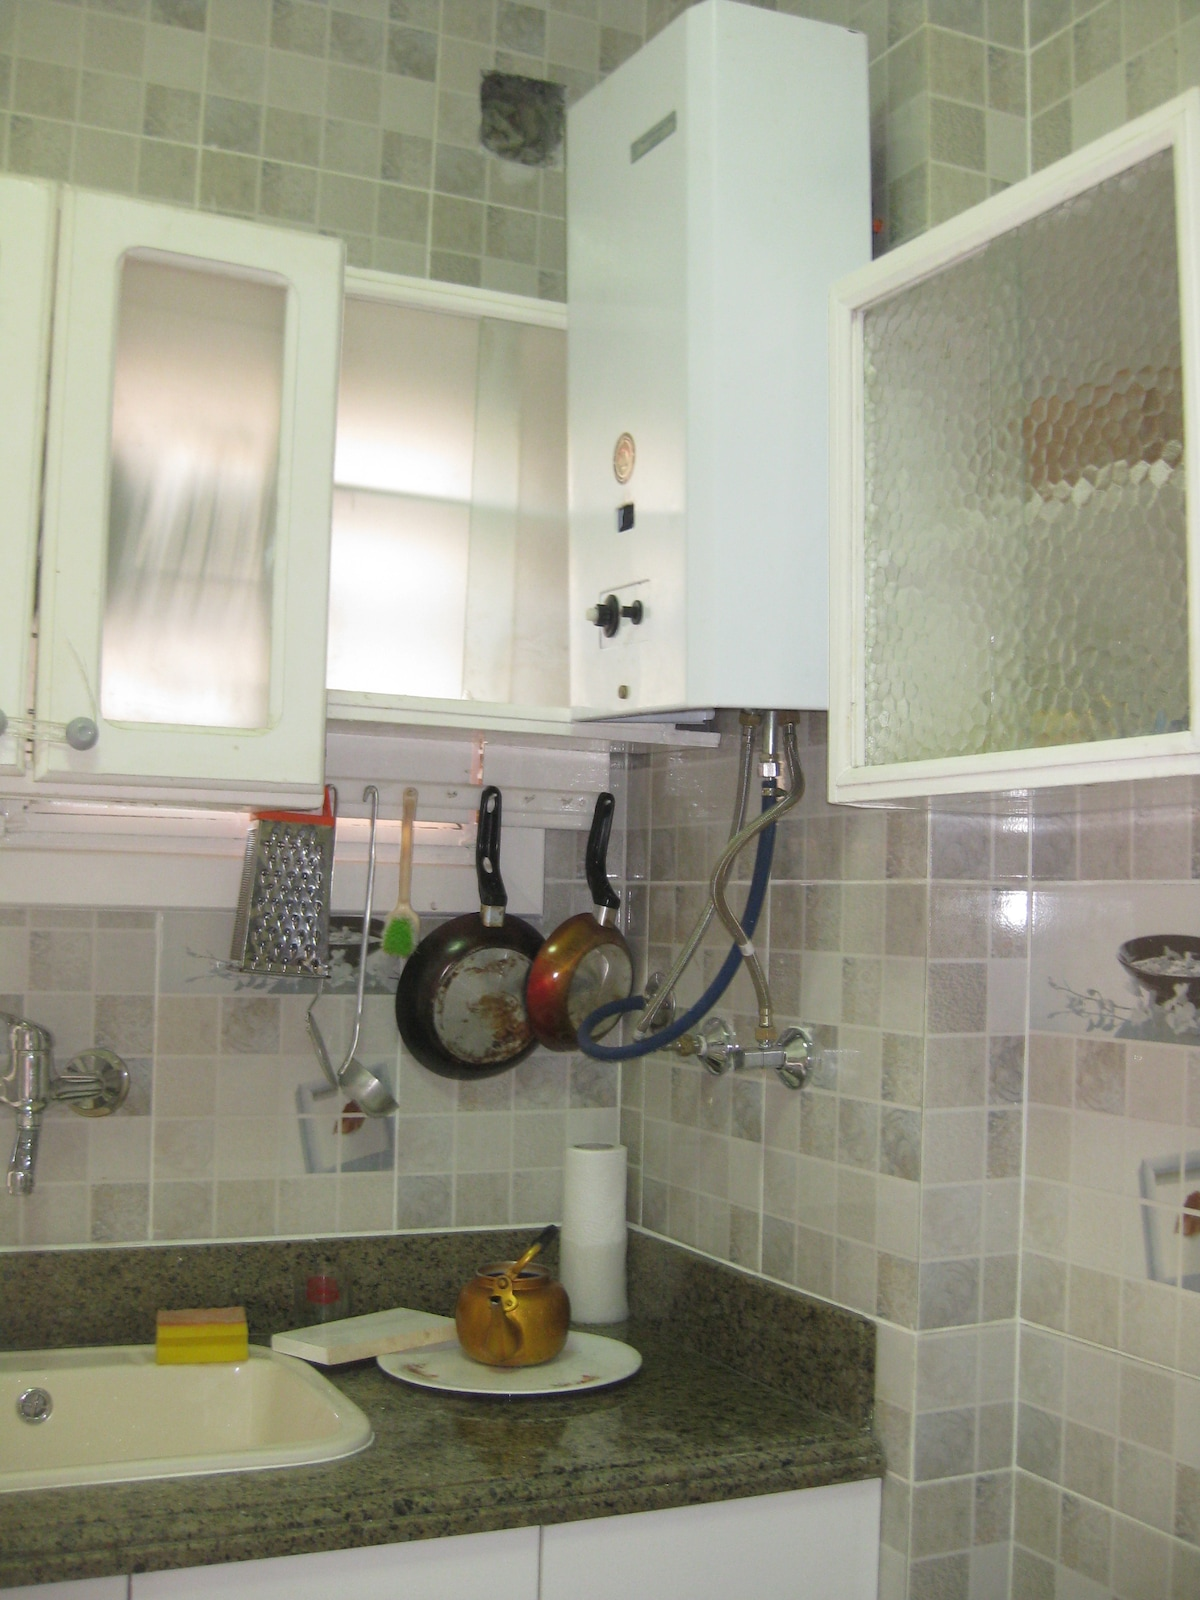 New Kitchen after Recnovation  - Water Heater